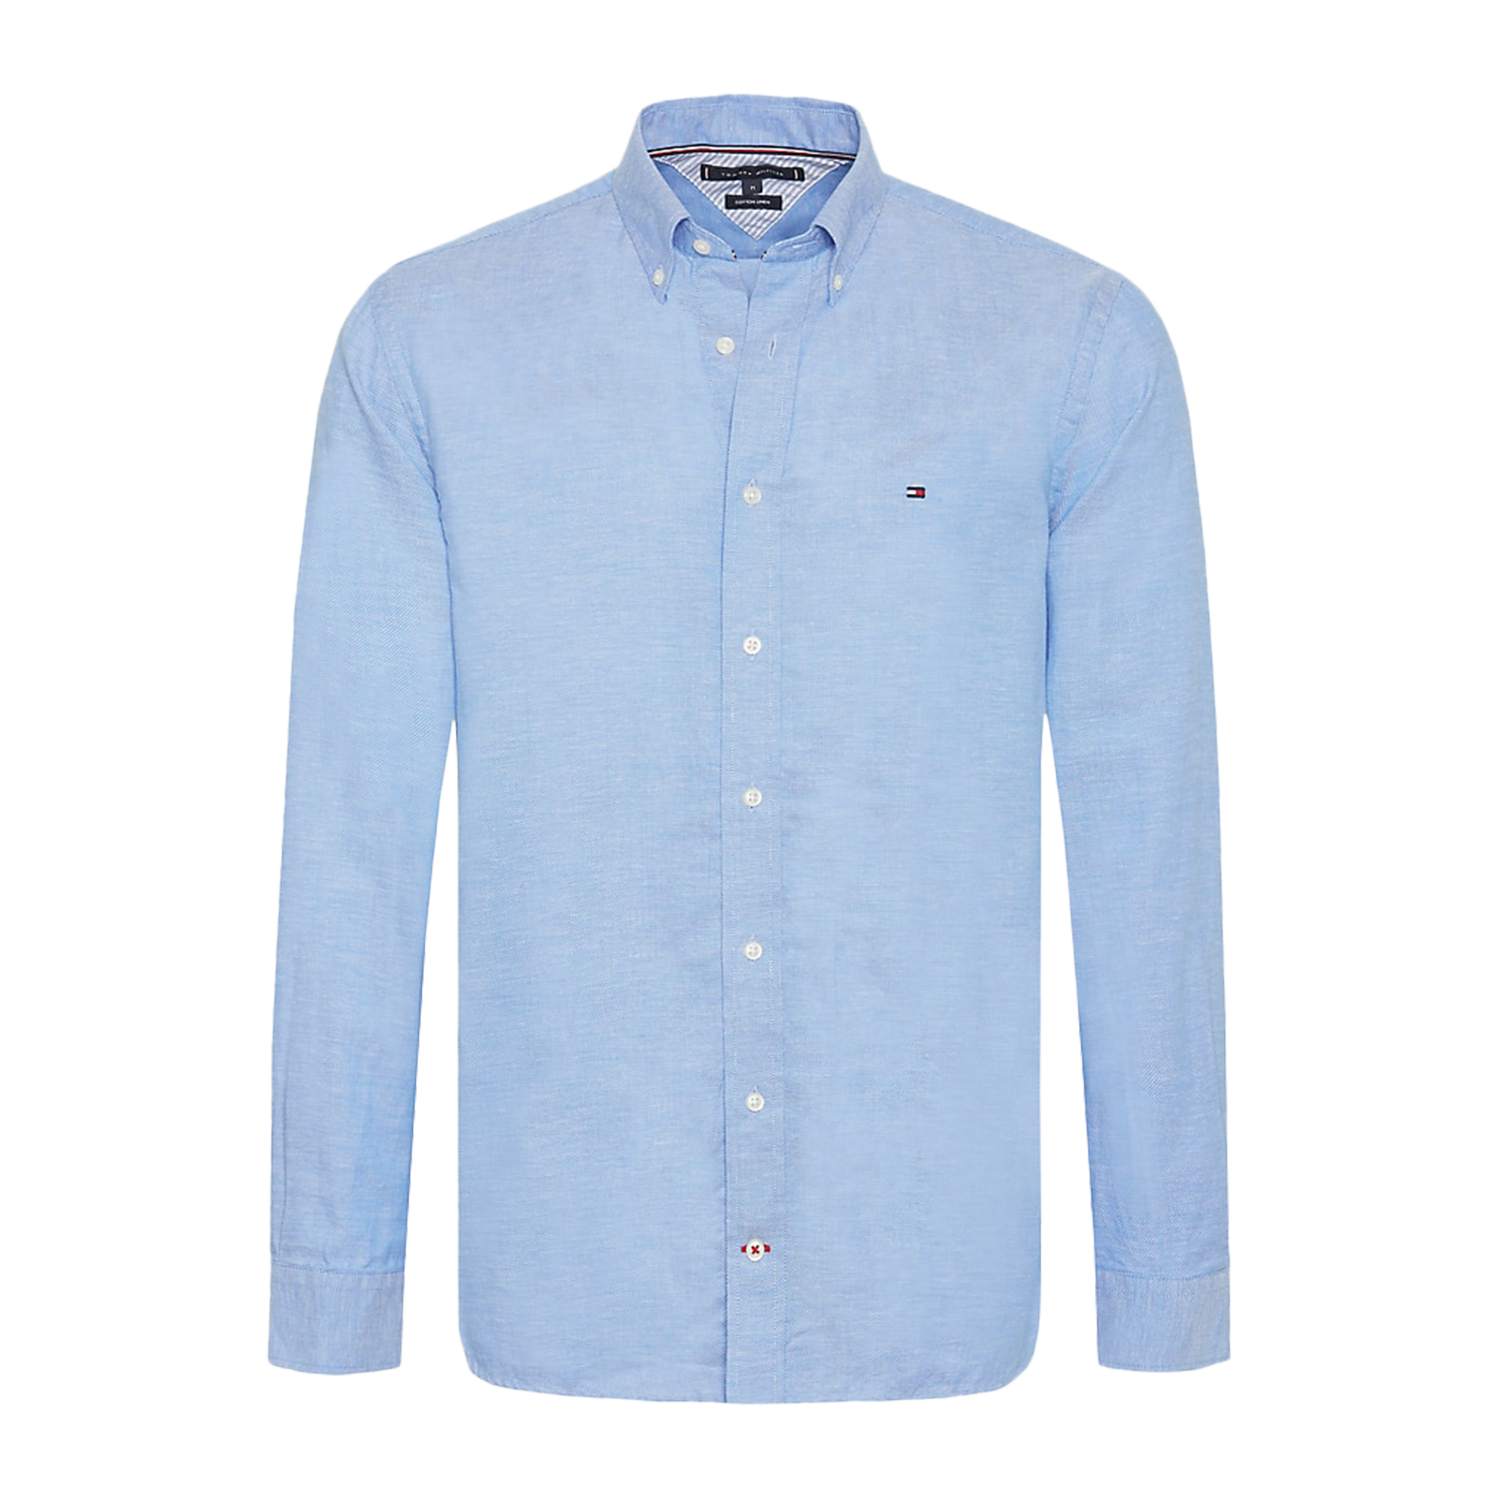 Tommy Hilfiger Dobby Chemise homme coton et lin, manches